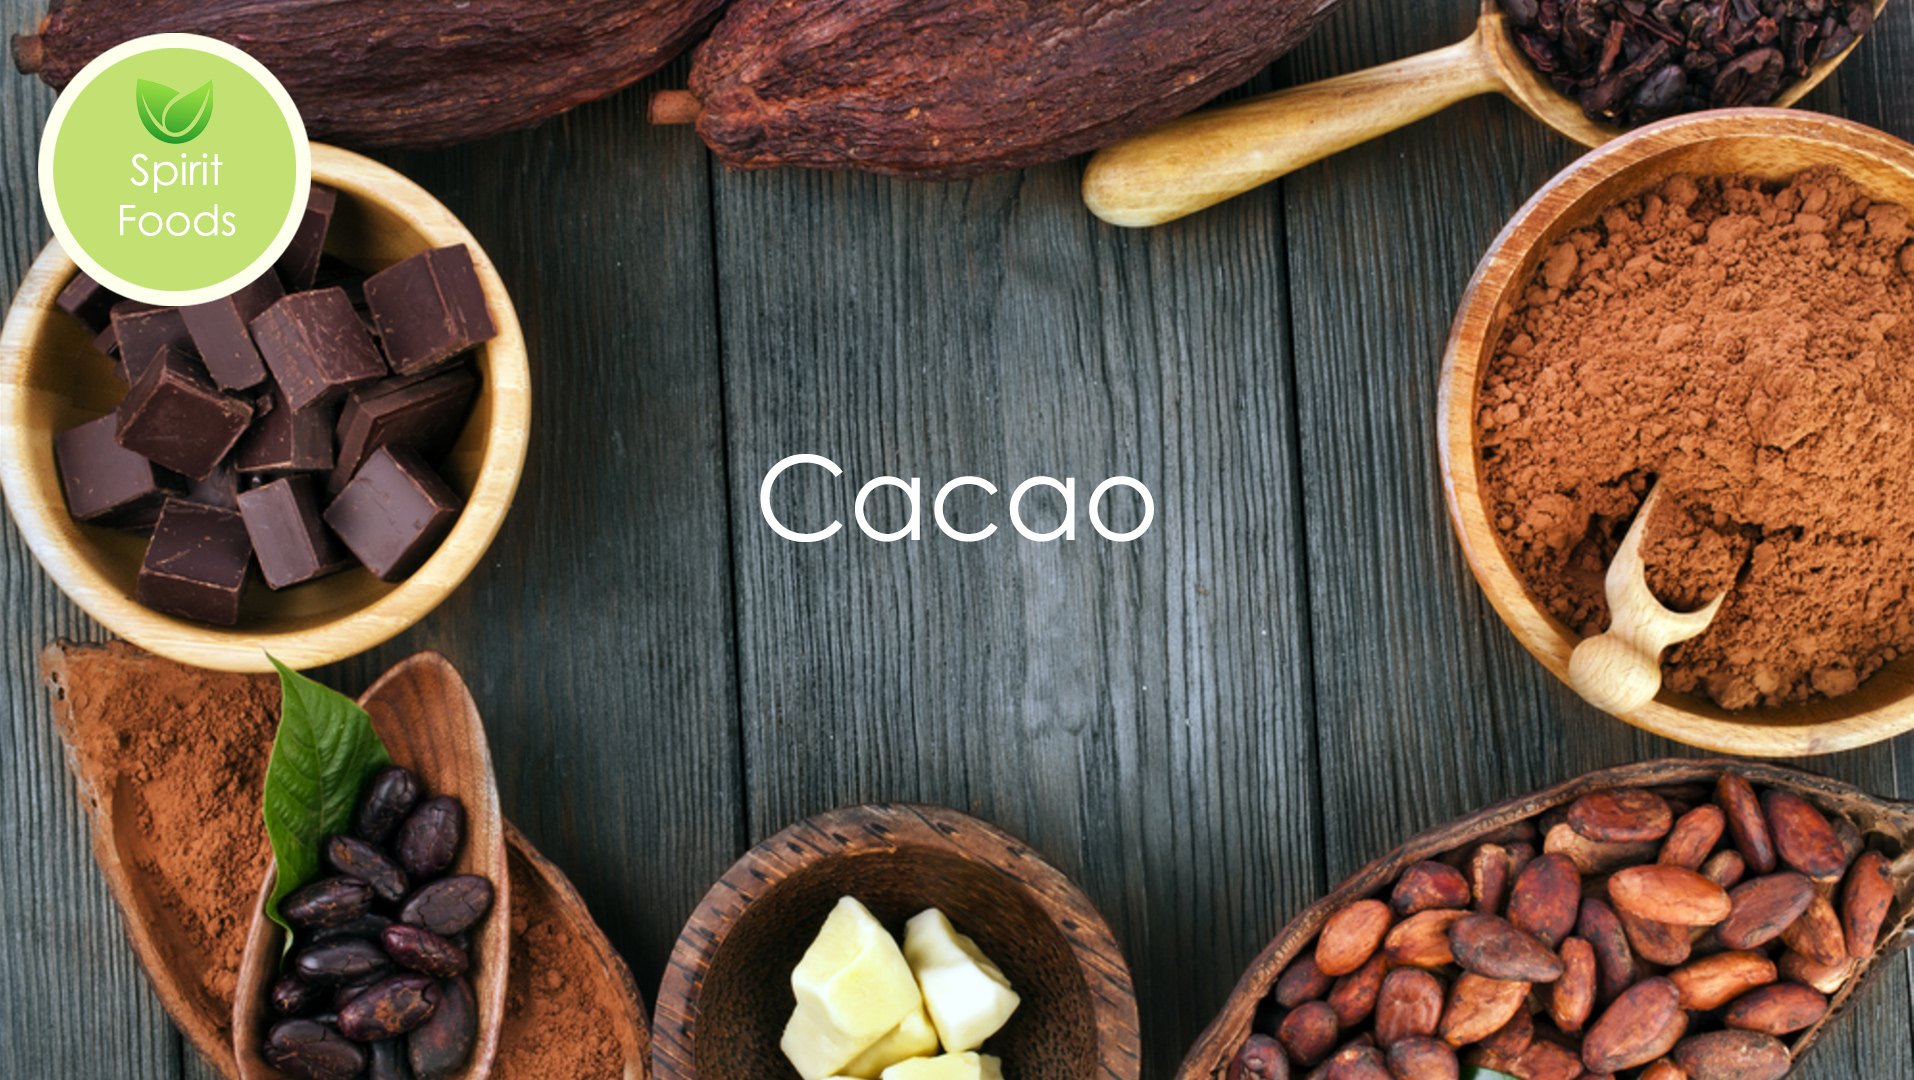 Spirit Food Cacao